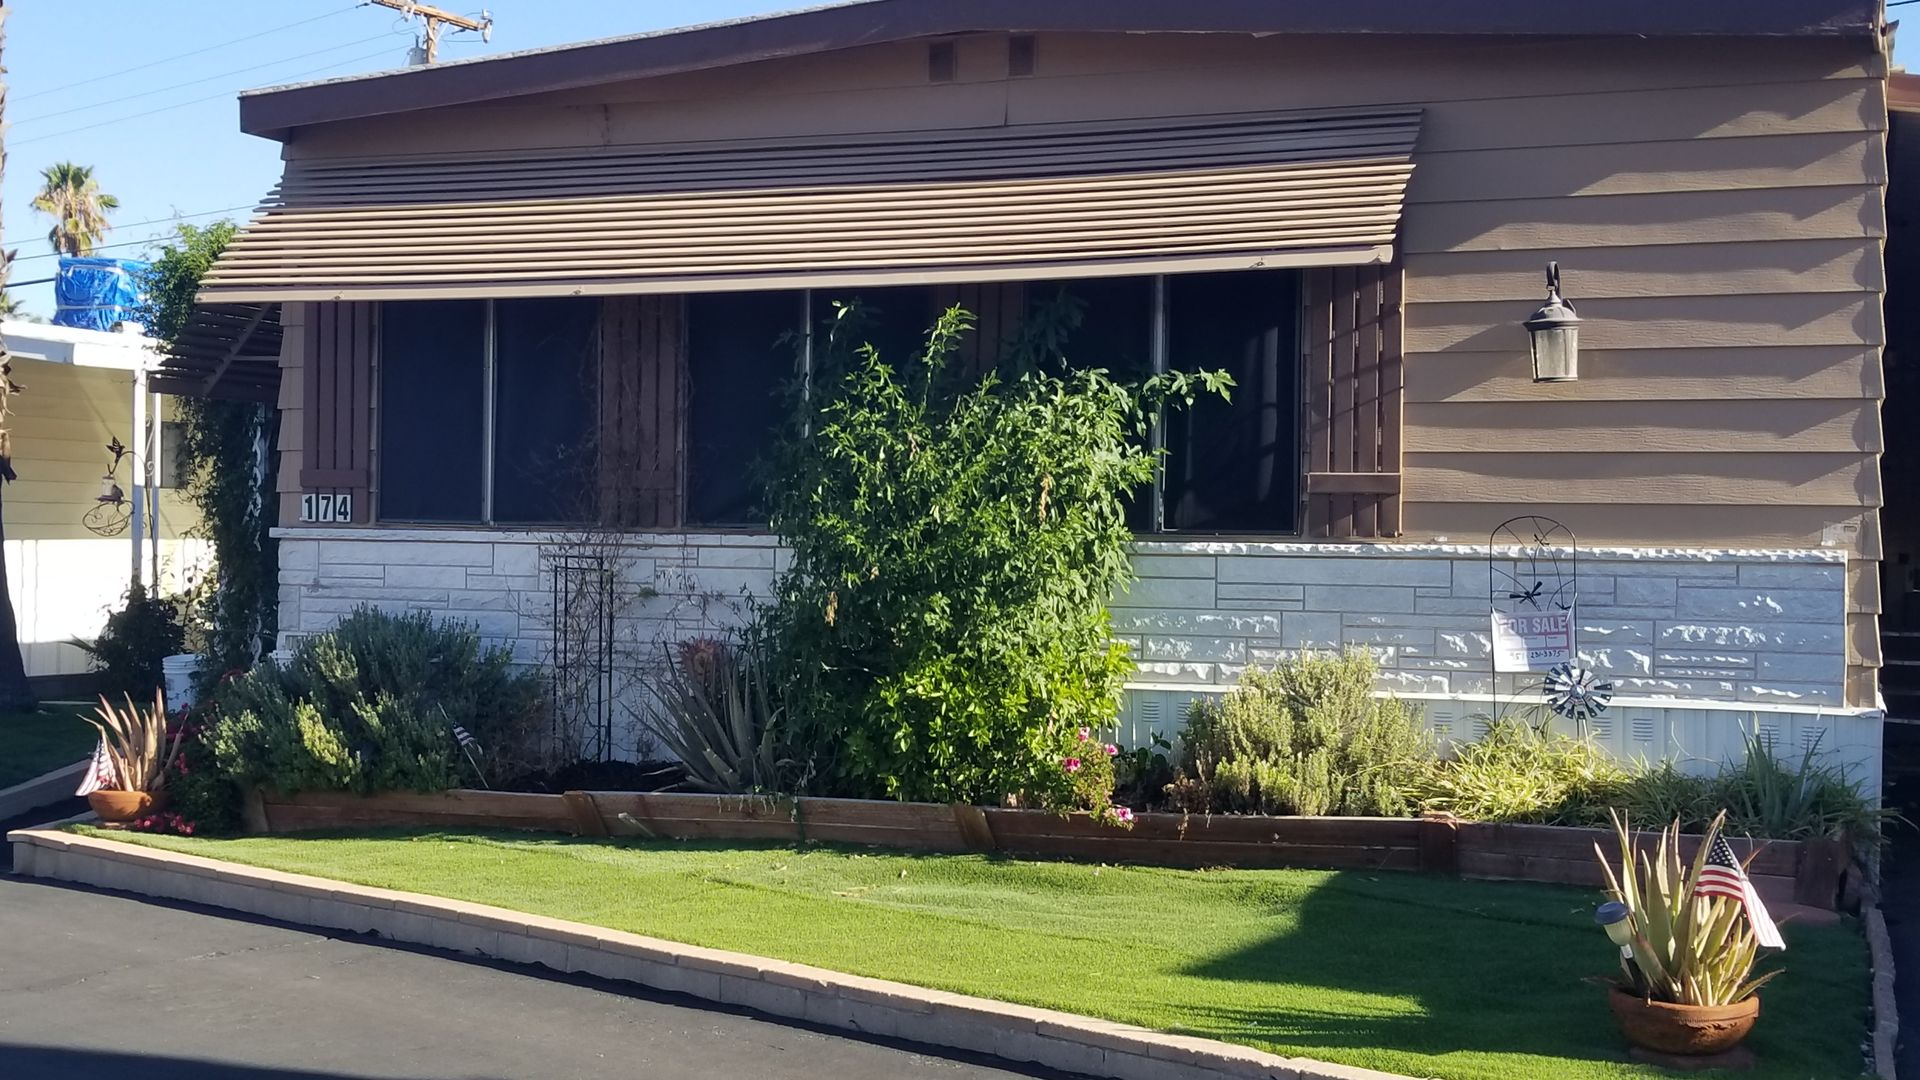 Loma Linda CA Mobile Homes & Manufactured Homes For Sale - 1